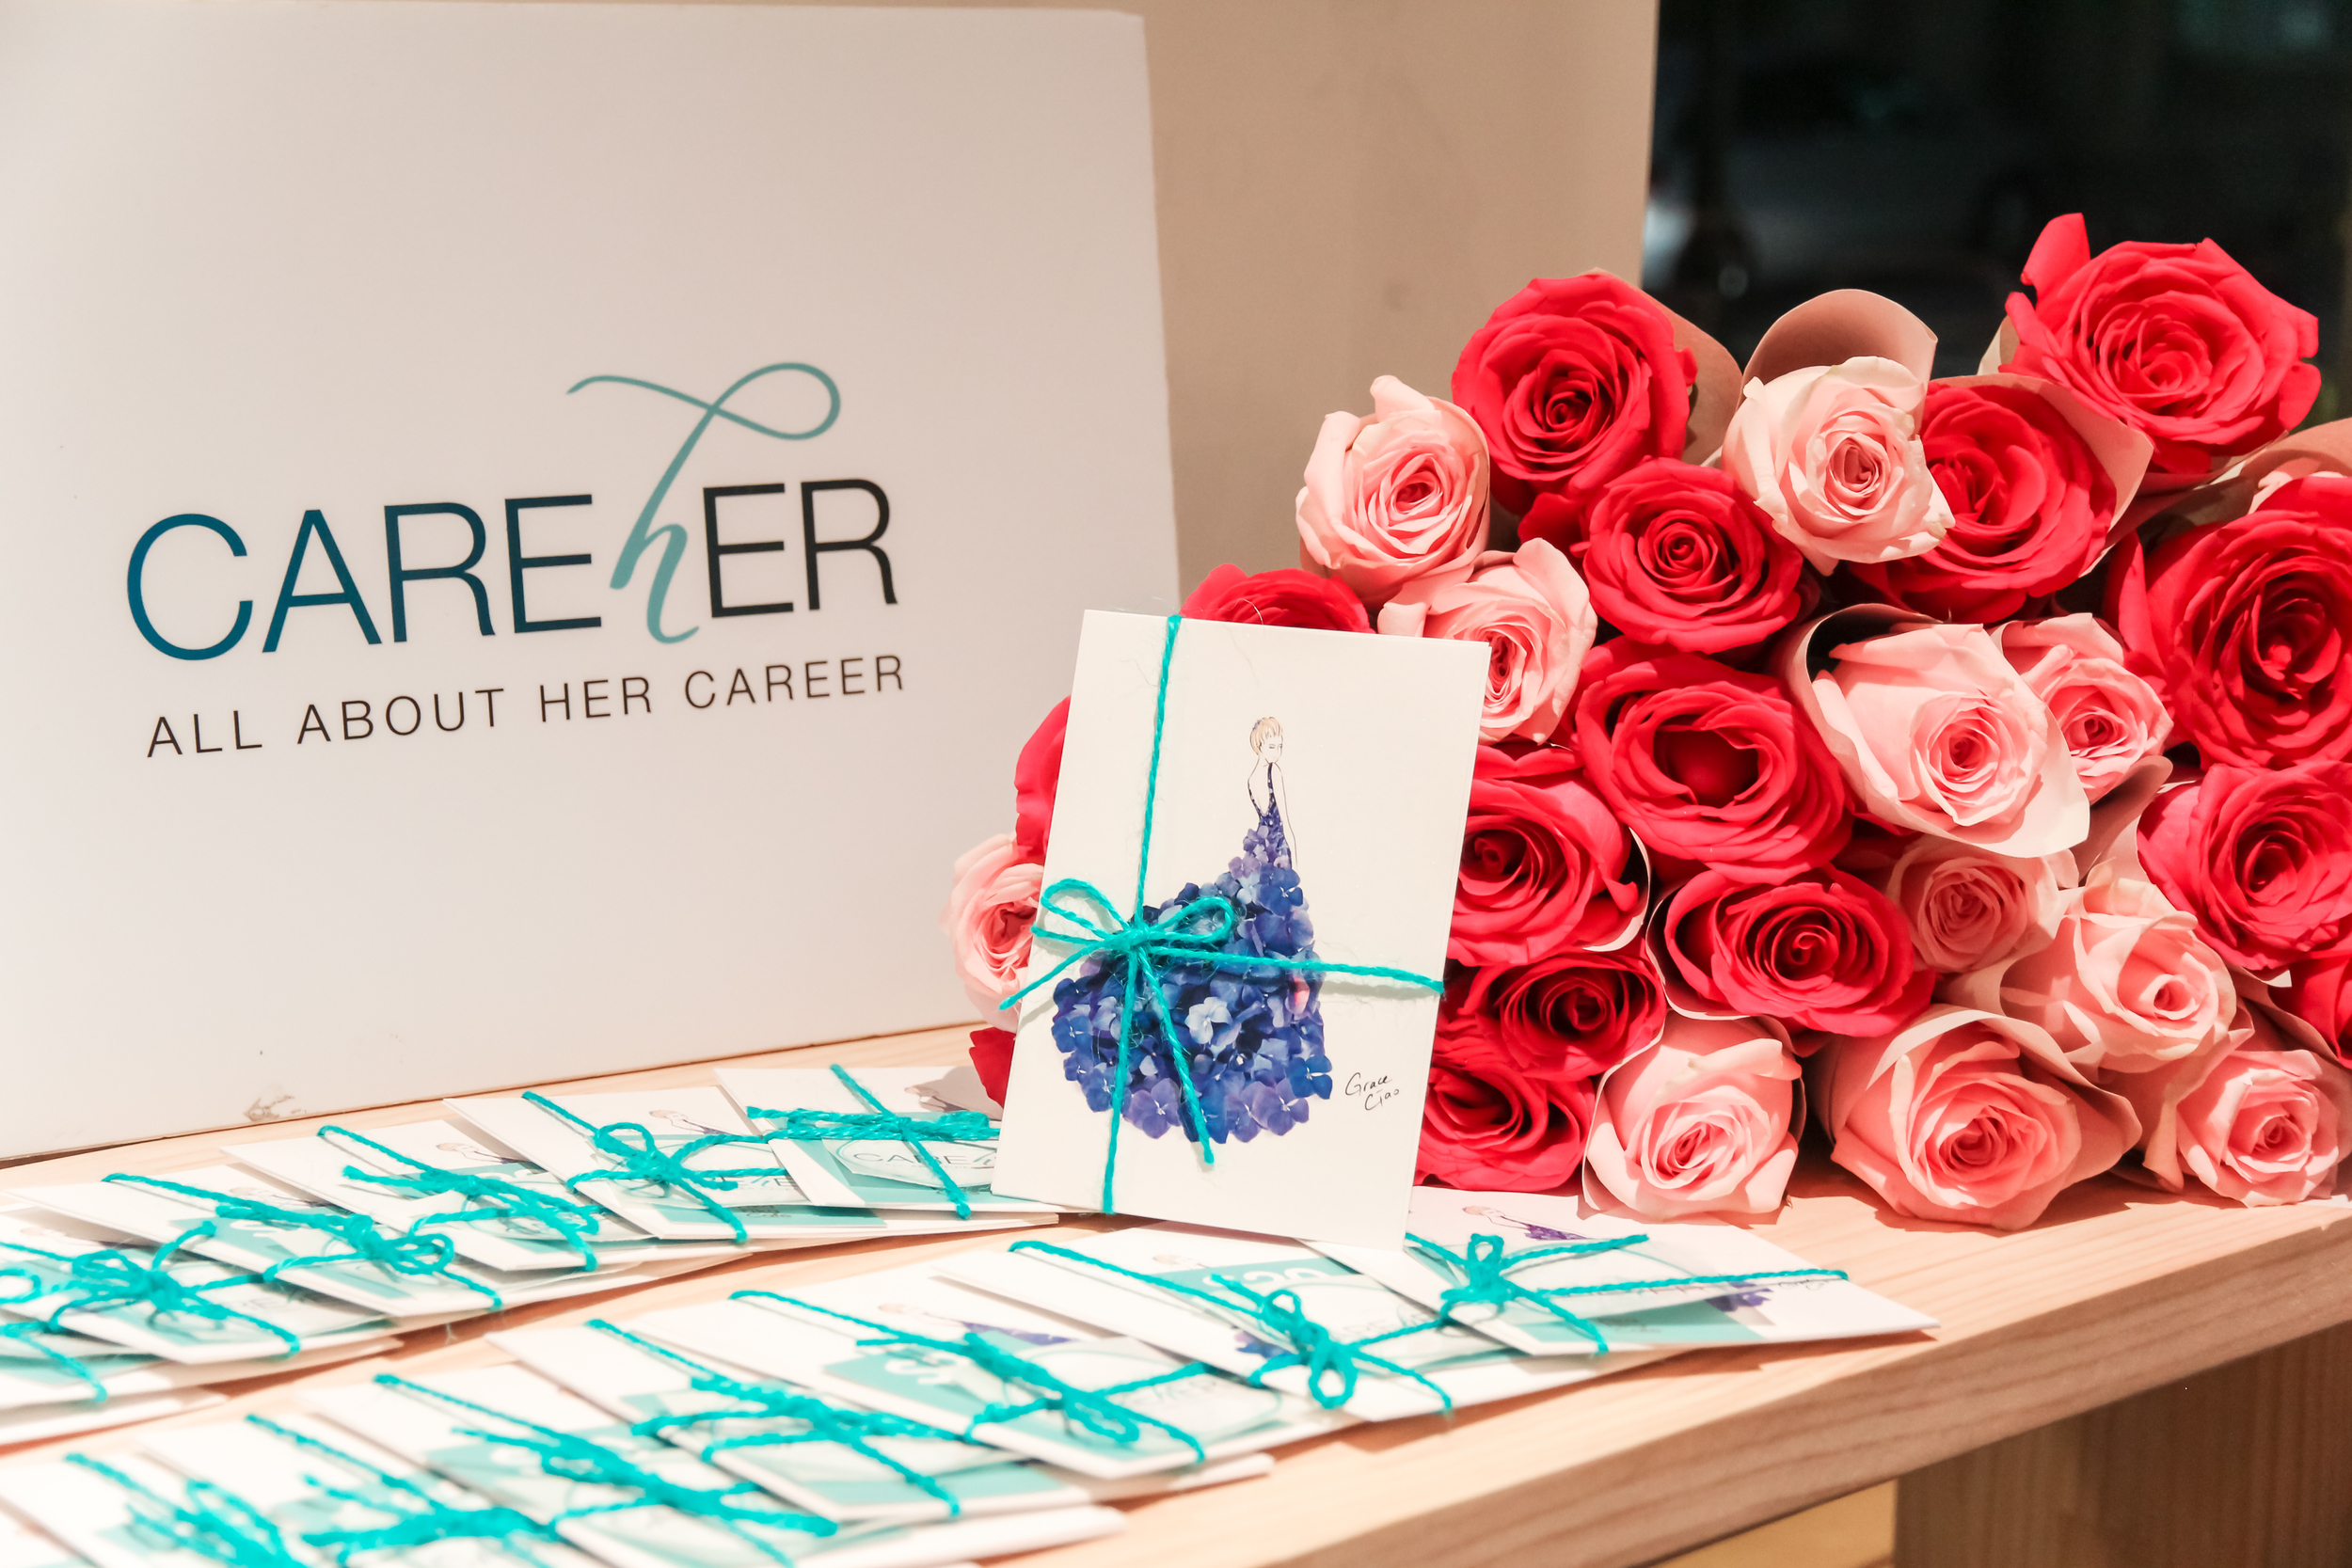 Souvenirs for theCAREhER members